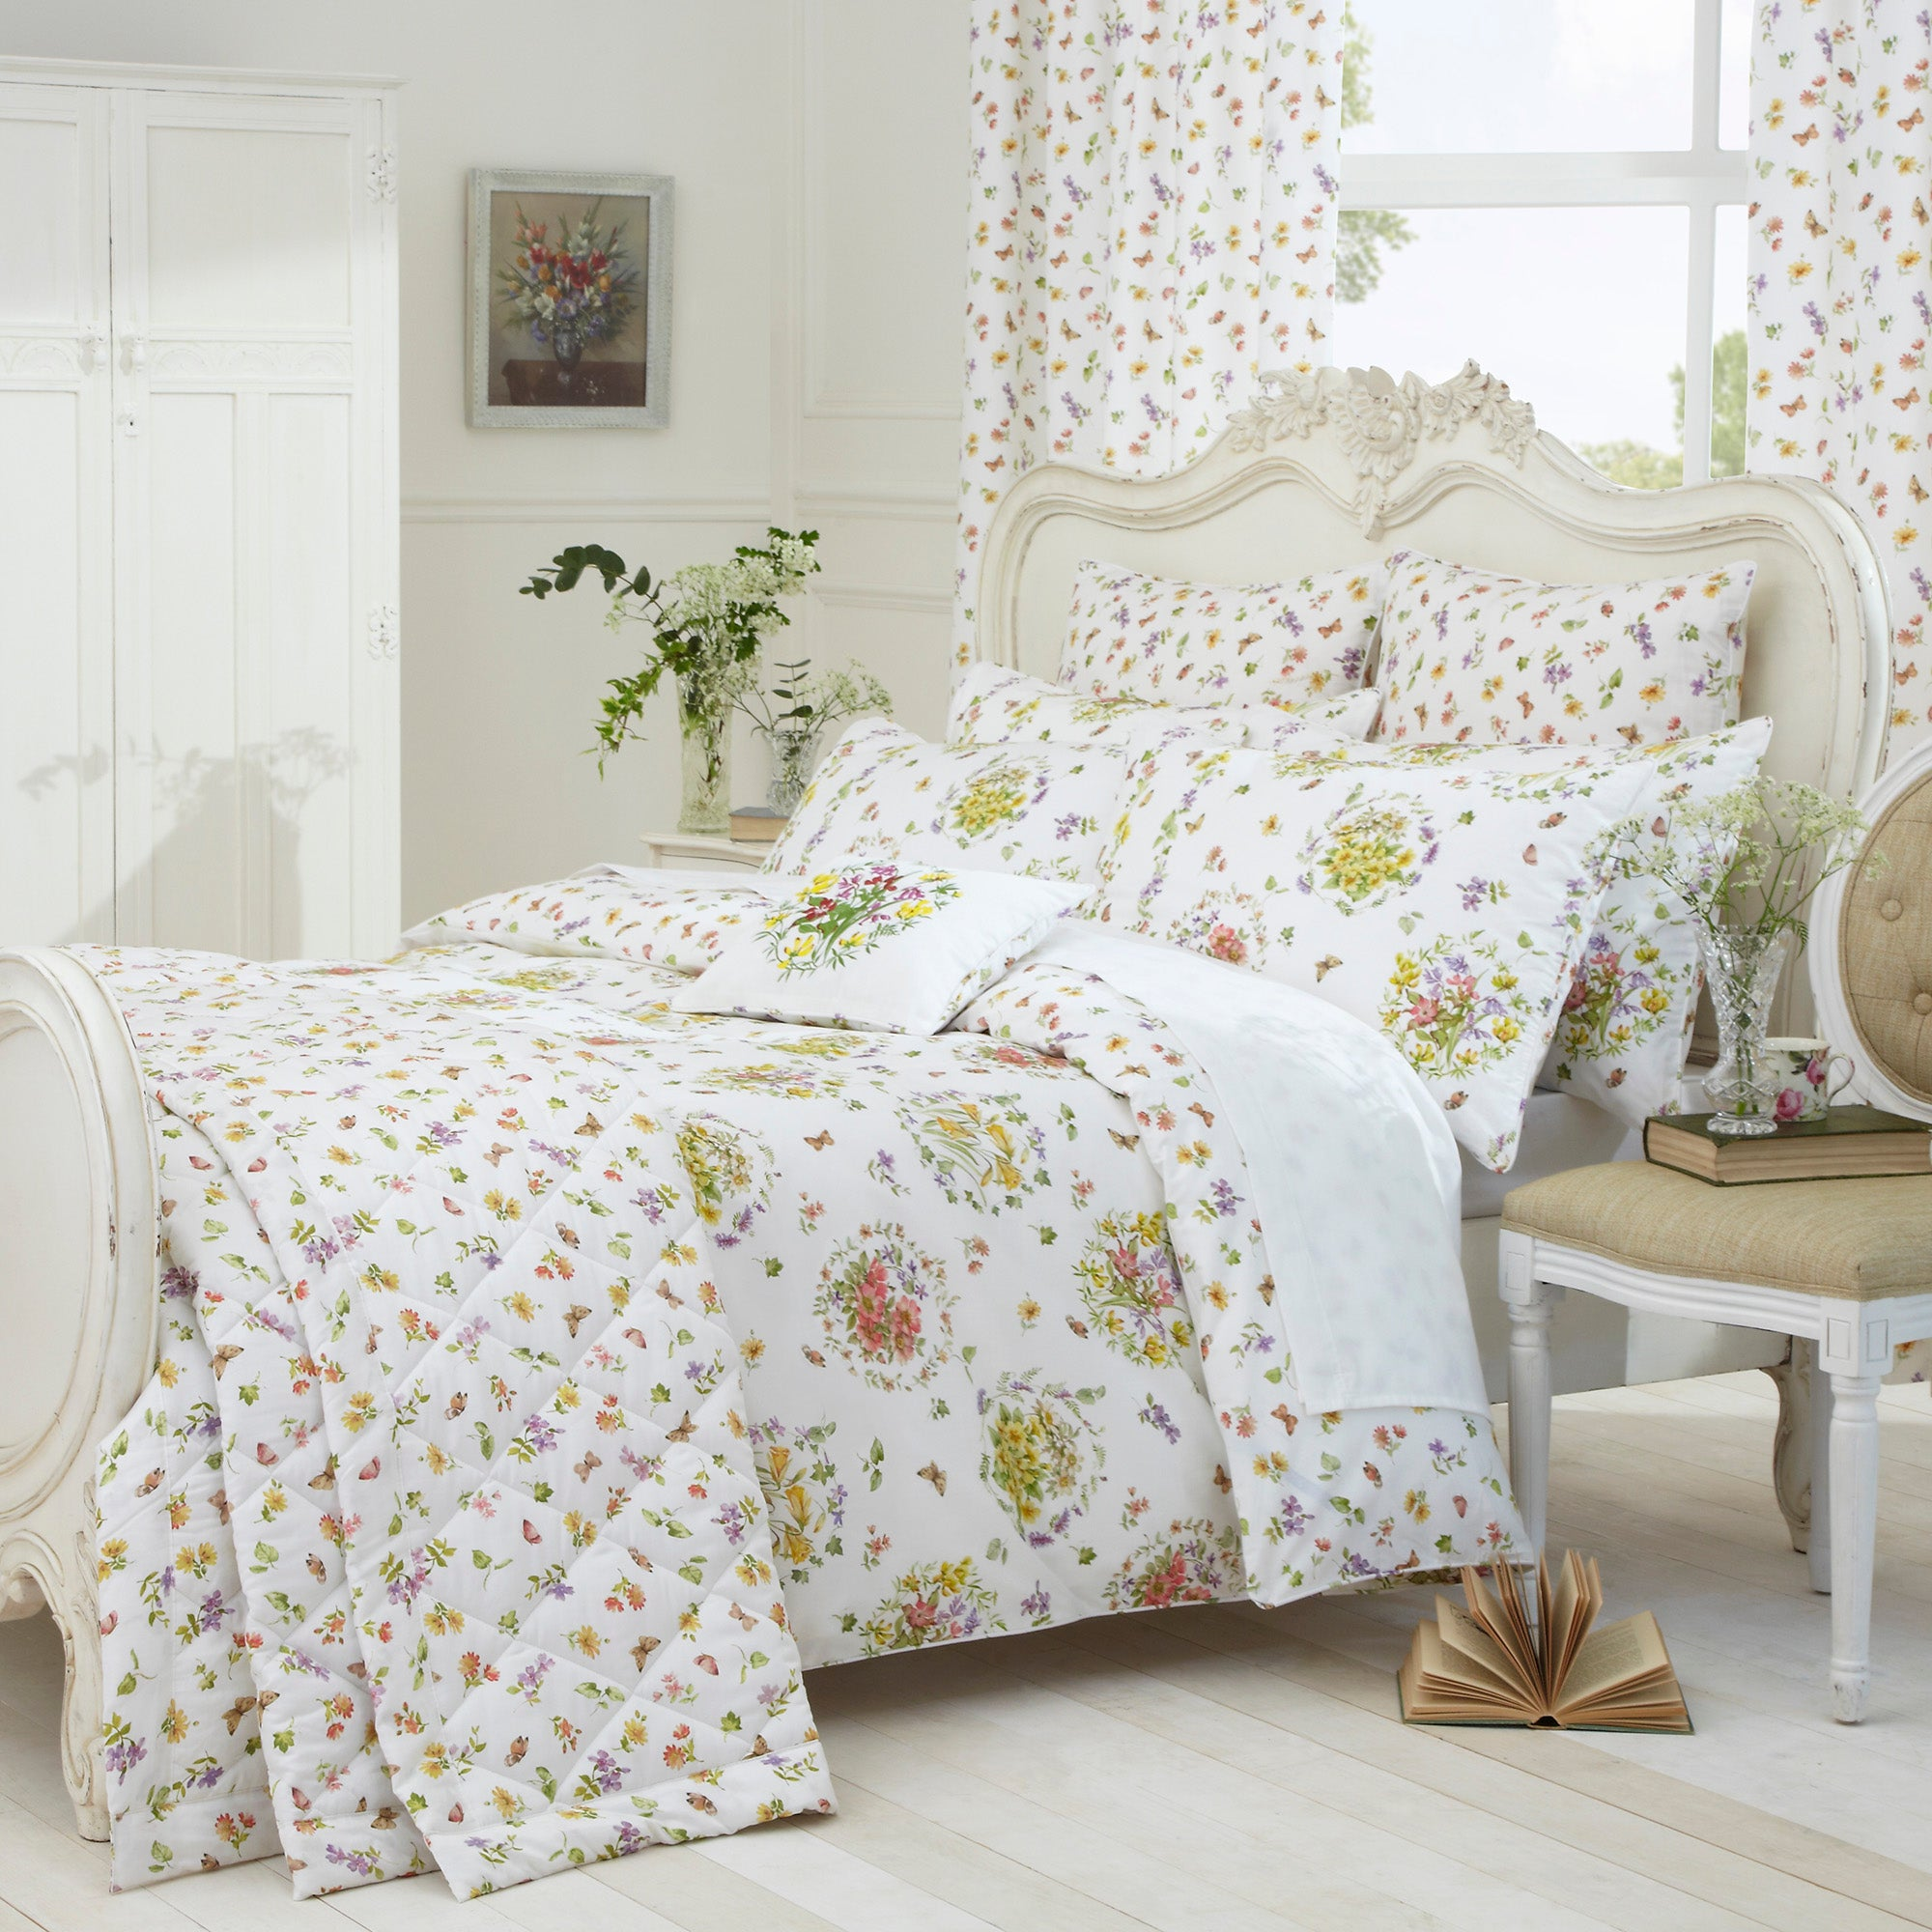 Dorma Country Garden Arlington Collection Duvet Cover Set